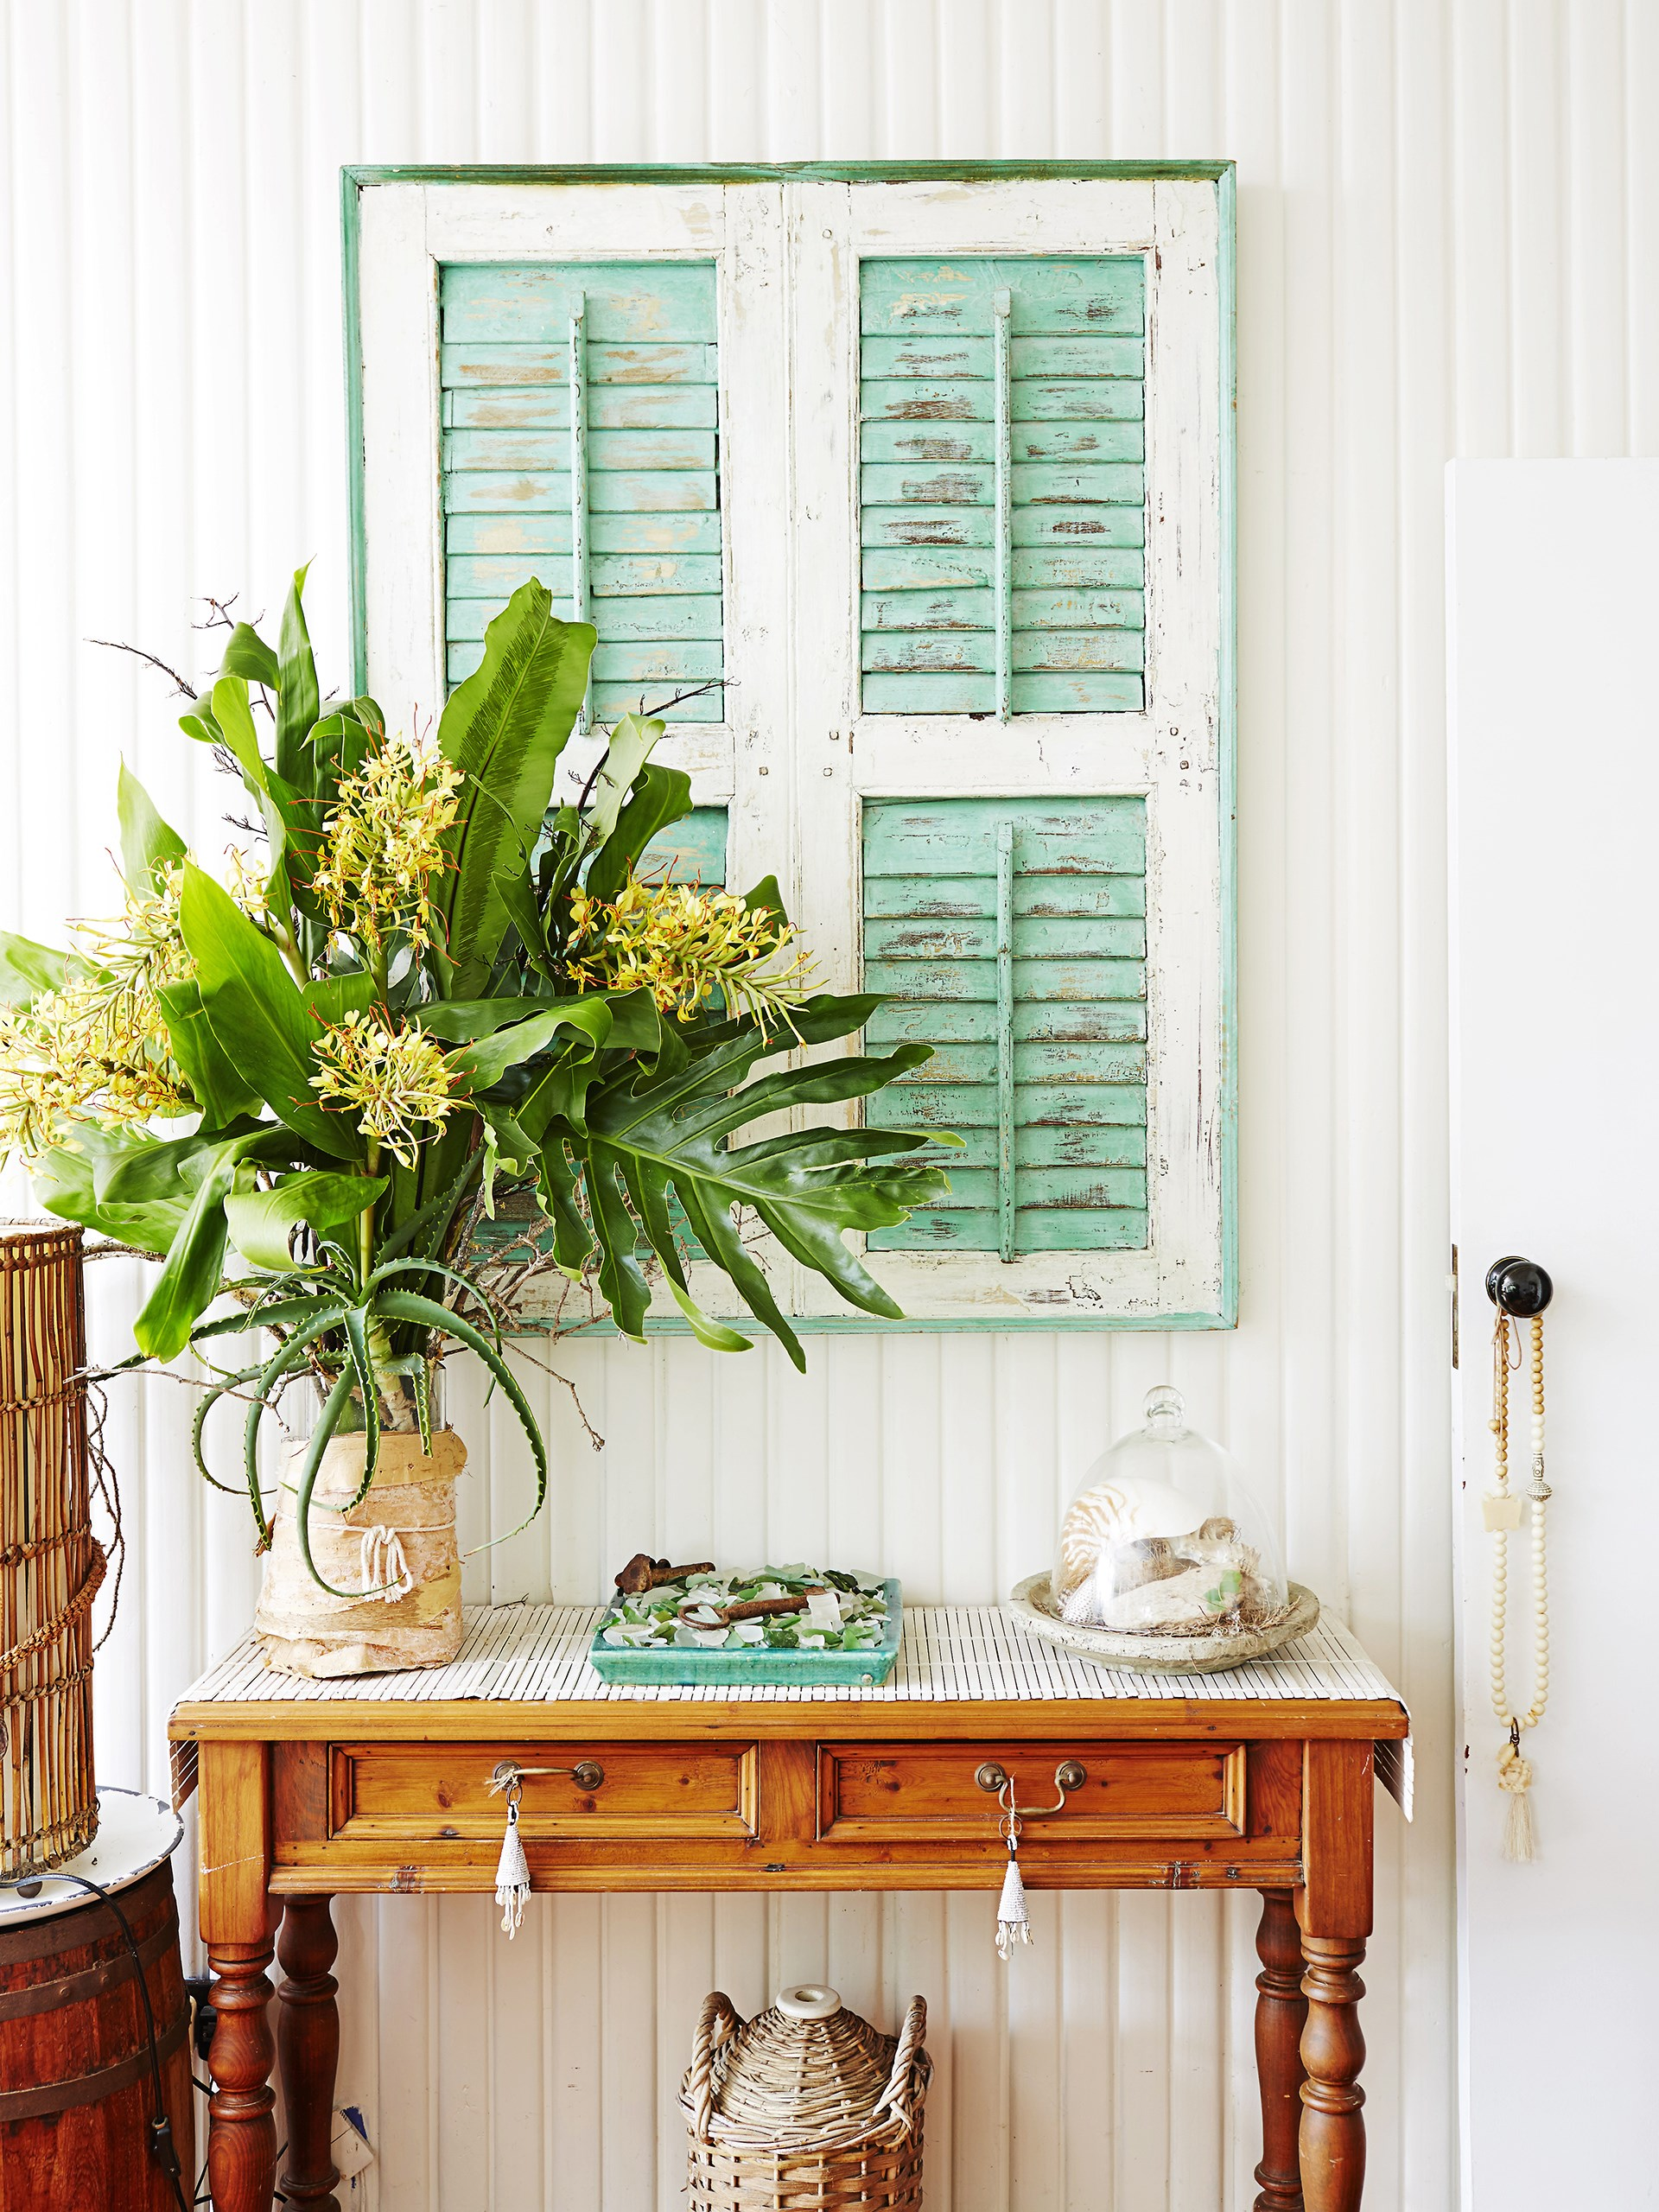 Old shutters mounted on a wall are an instant art solution for anyone with a rustic sense of style.